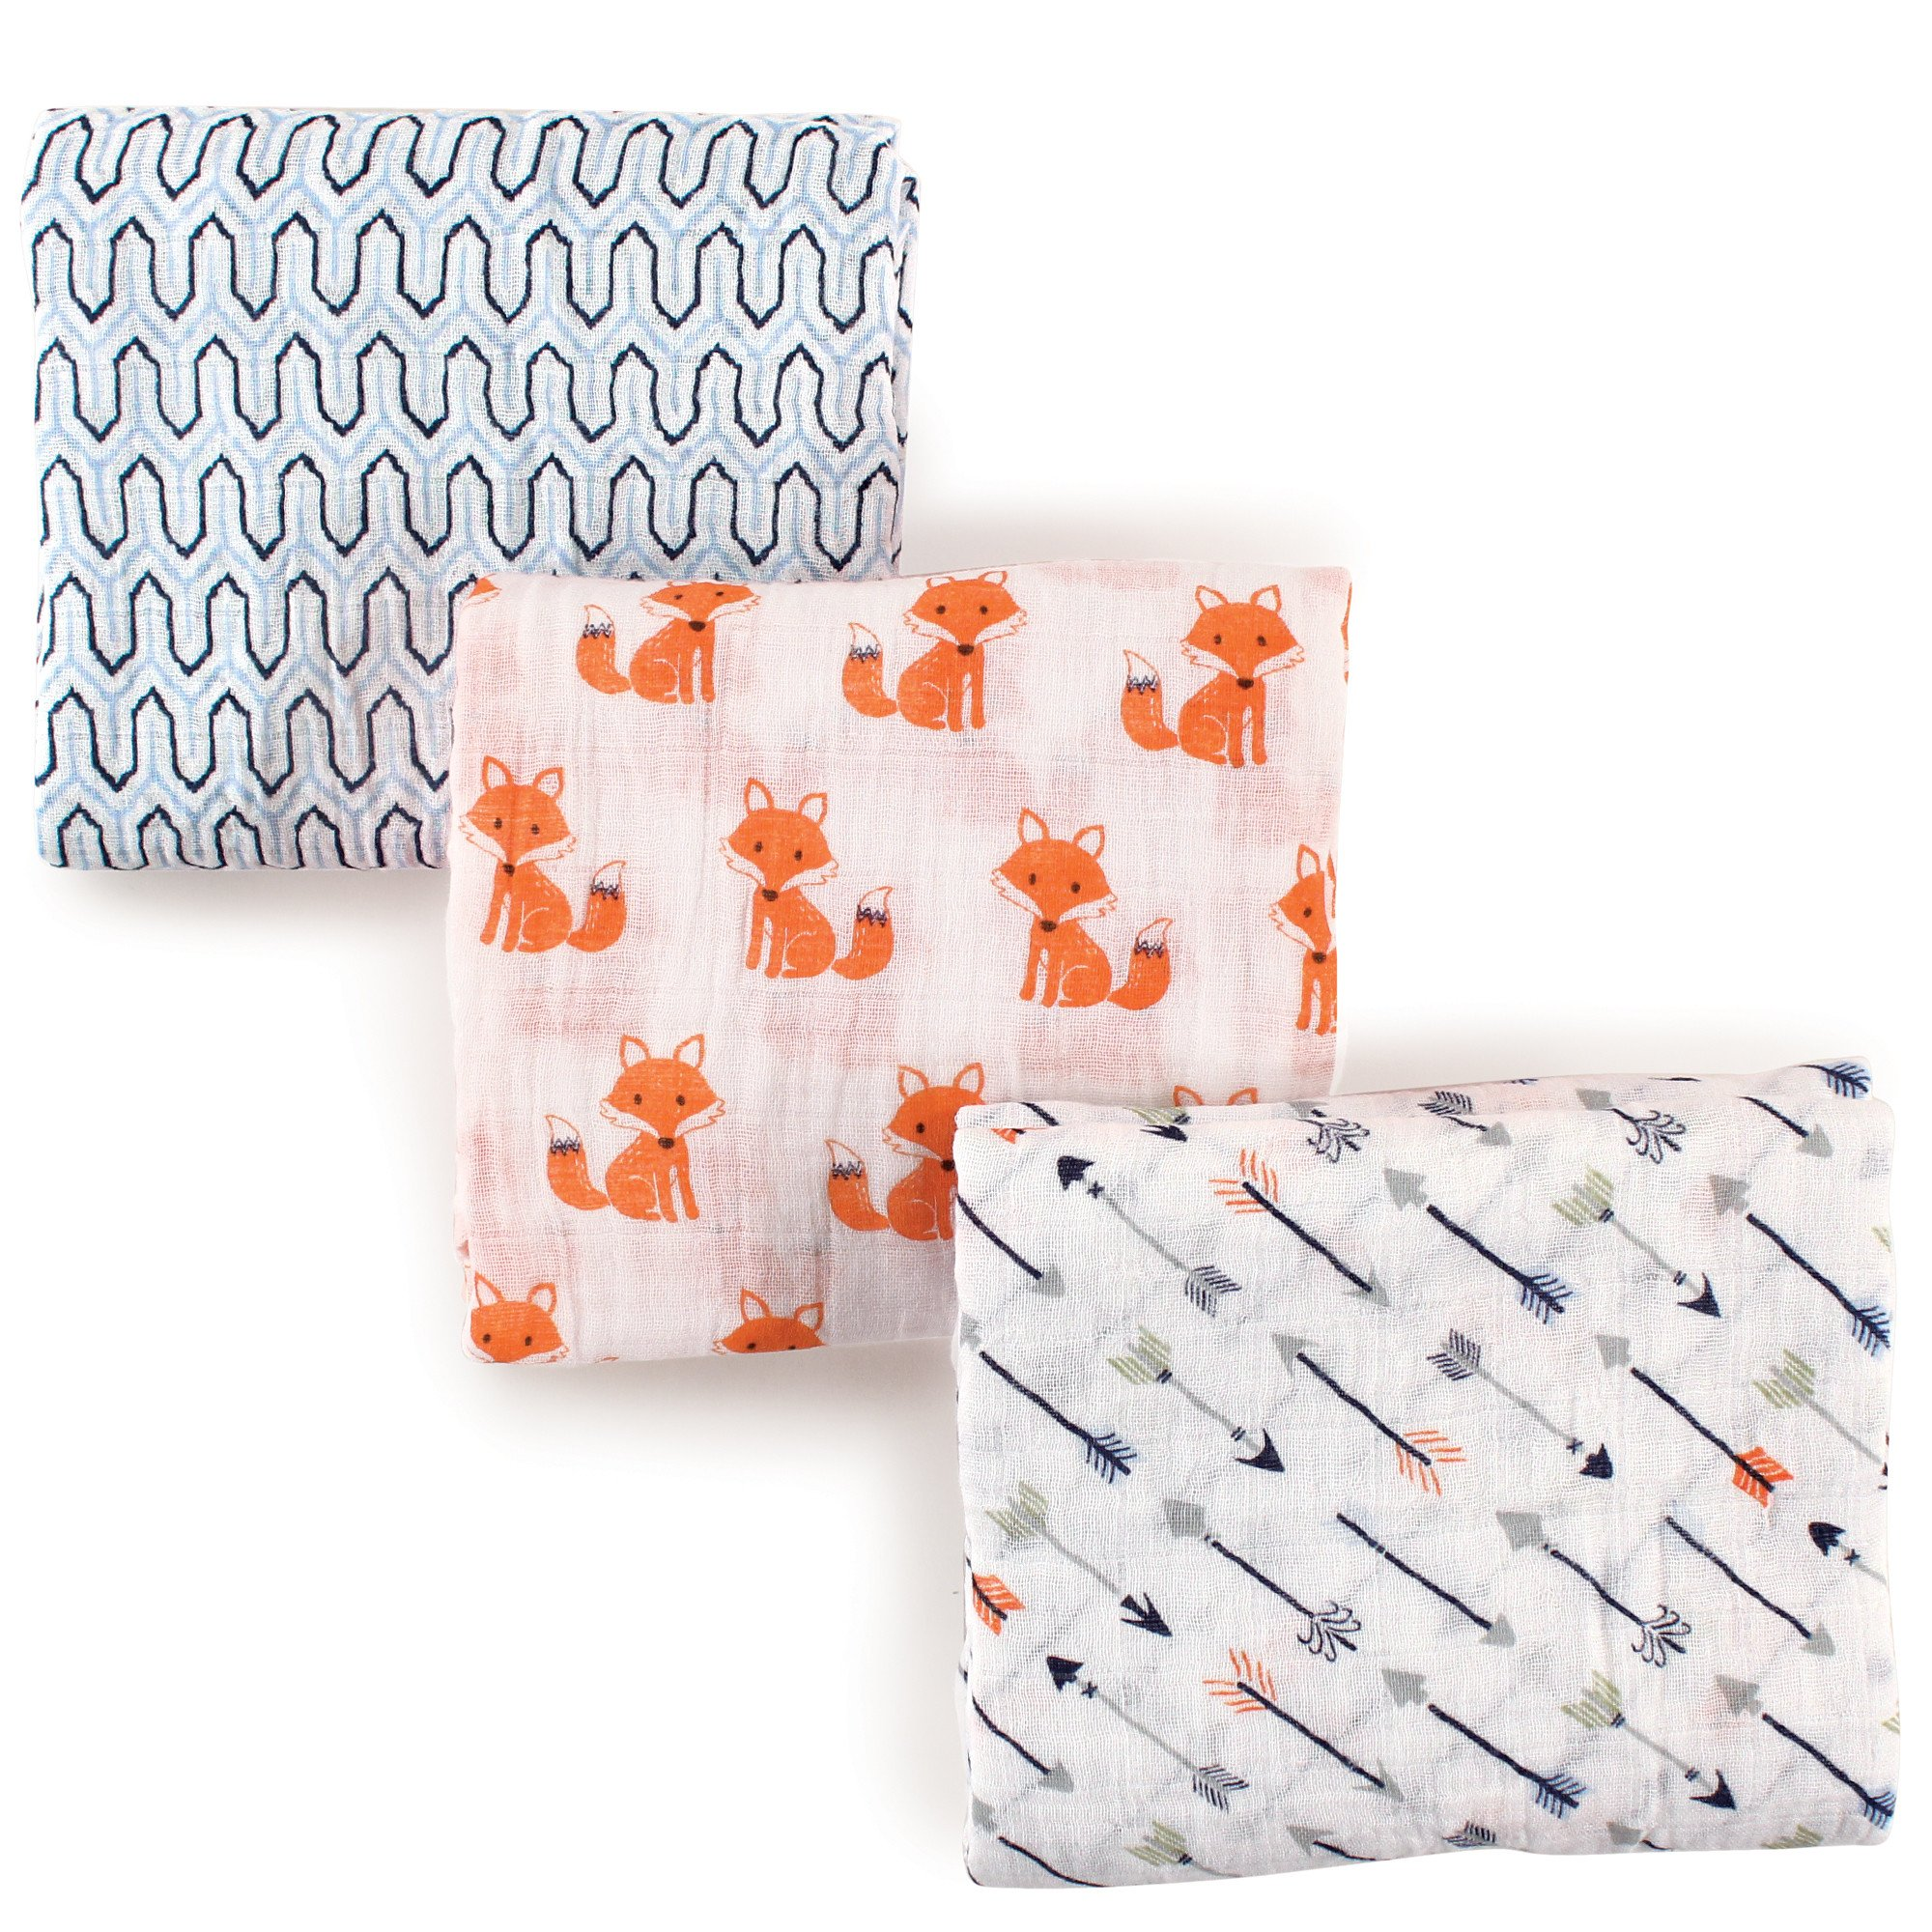 Hudson Baby Unisex Baby Muslin Swaddle Blankets, Foxes 3 Pack, One Size by Hudson Baby